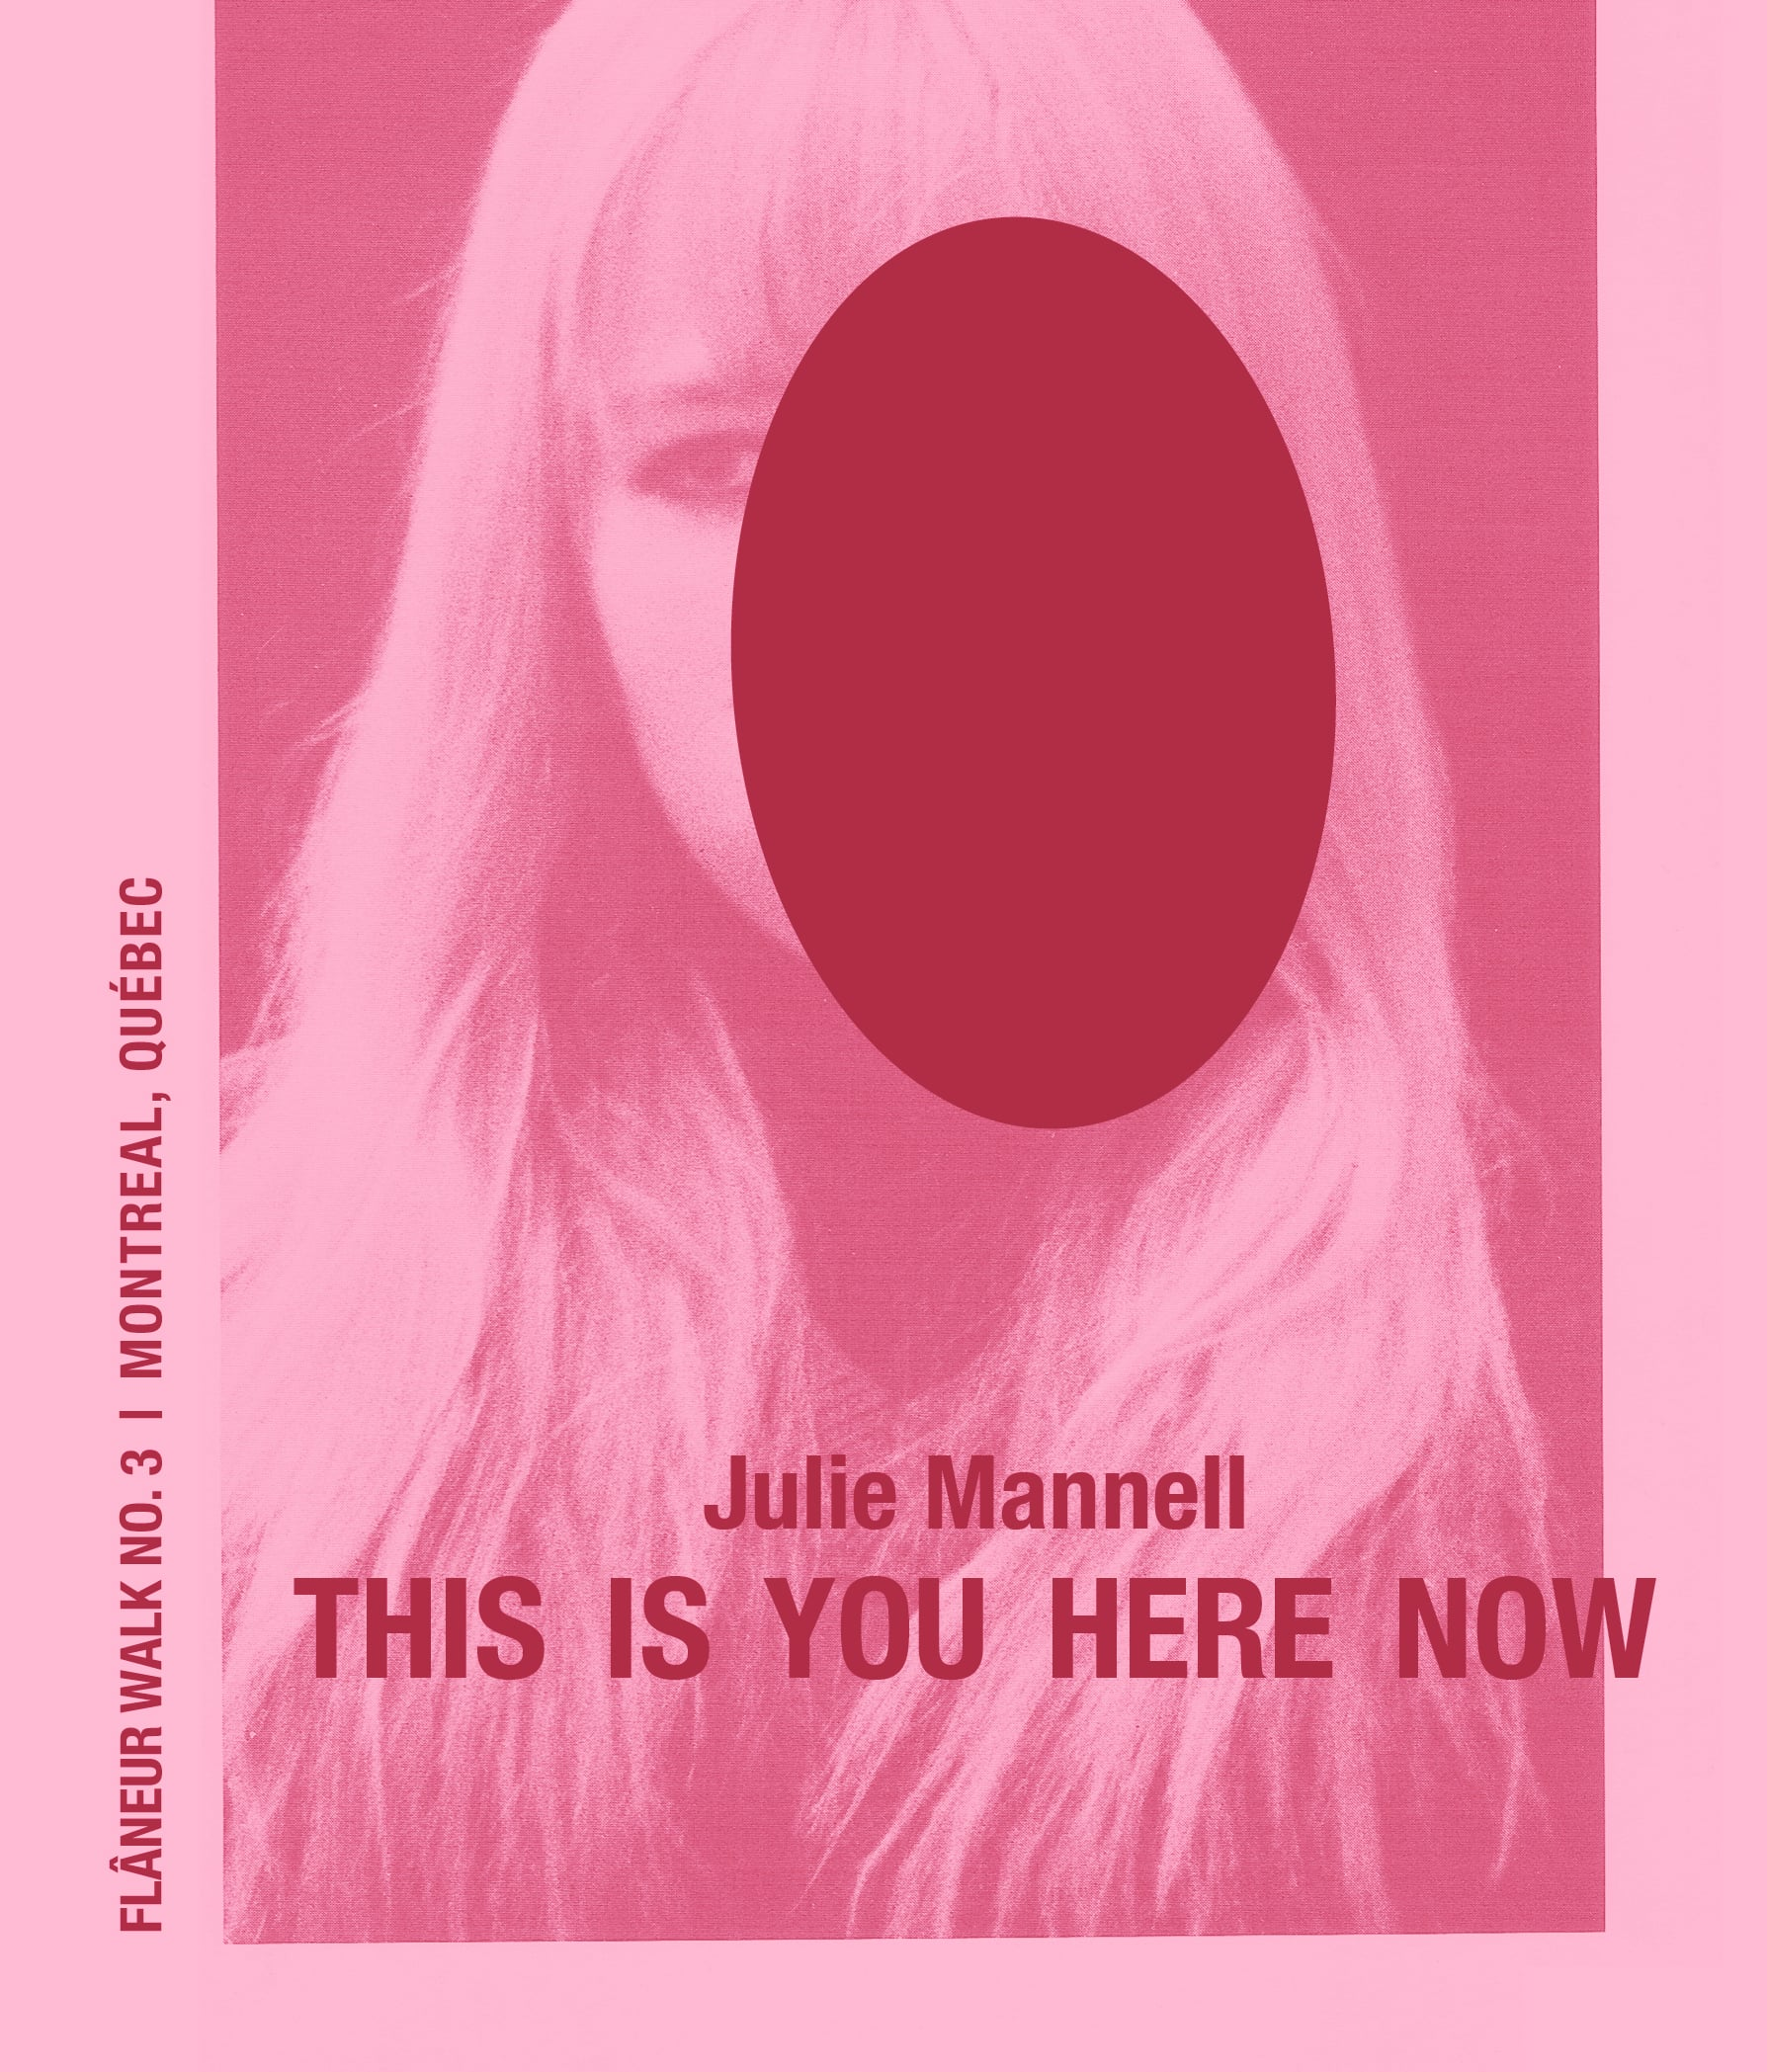 This Is You Here Now  by Julie Mannell (Shape&Nature Press, 2015)| Flaneur Walk Pamphlet Series, No. 3: Montréal,  Québec